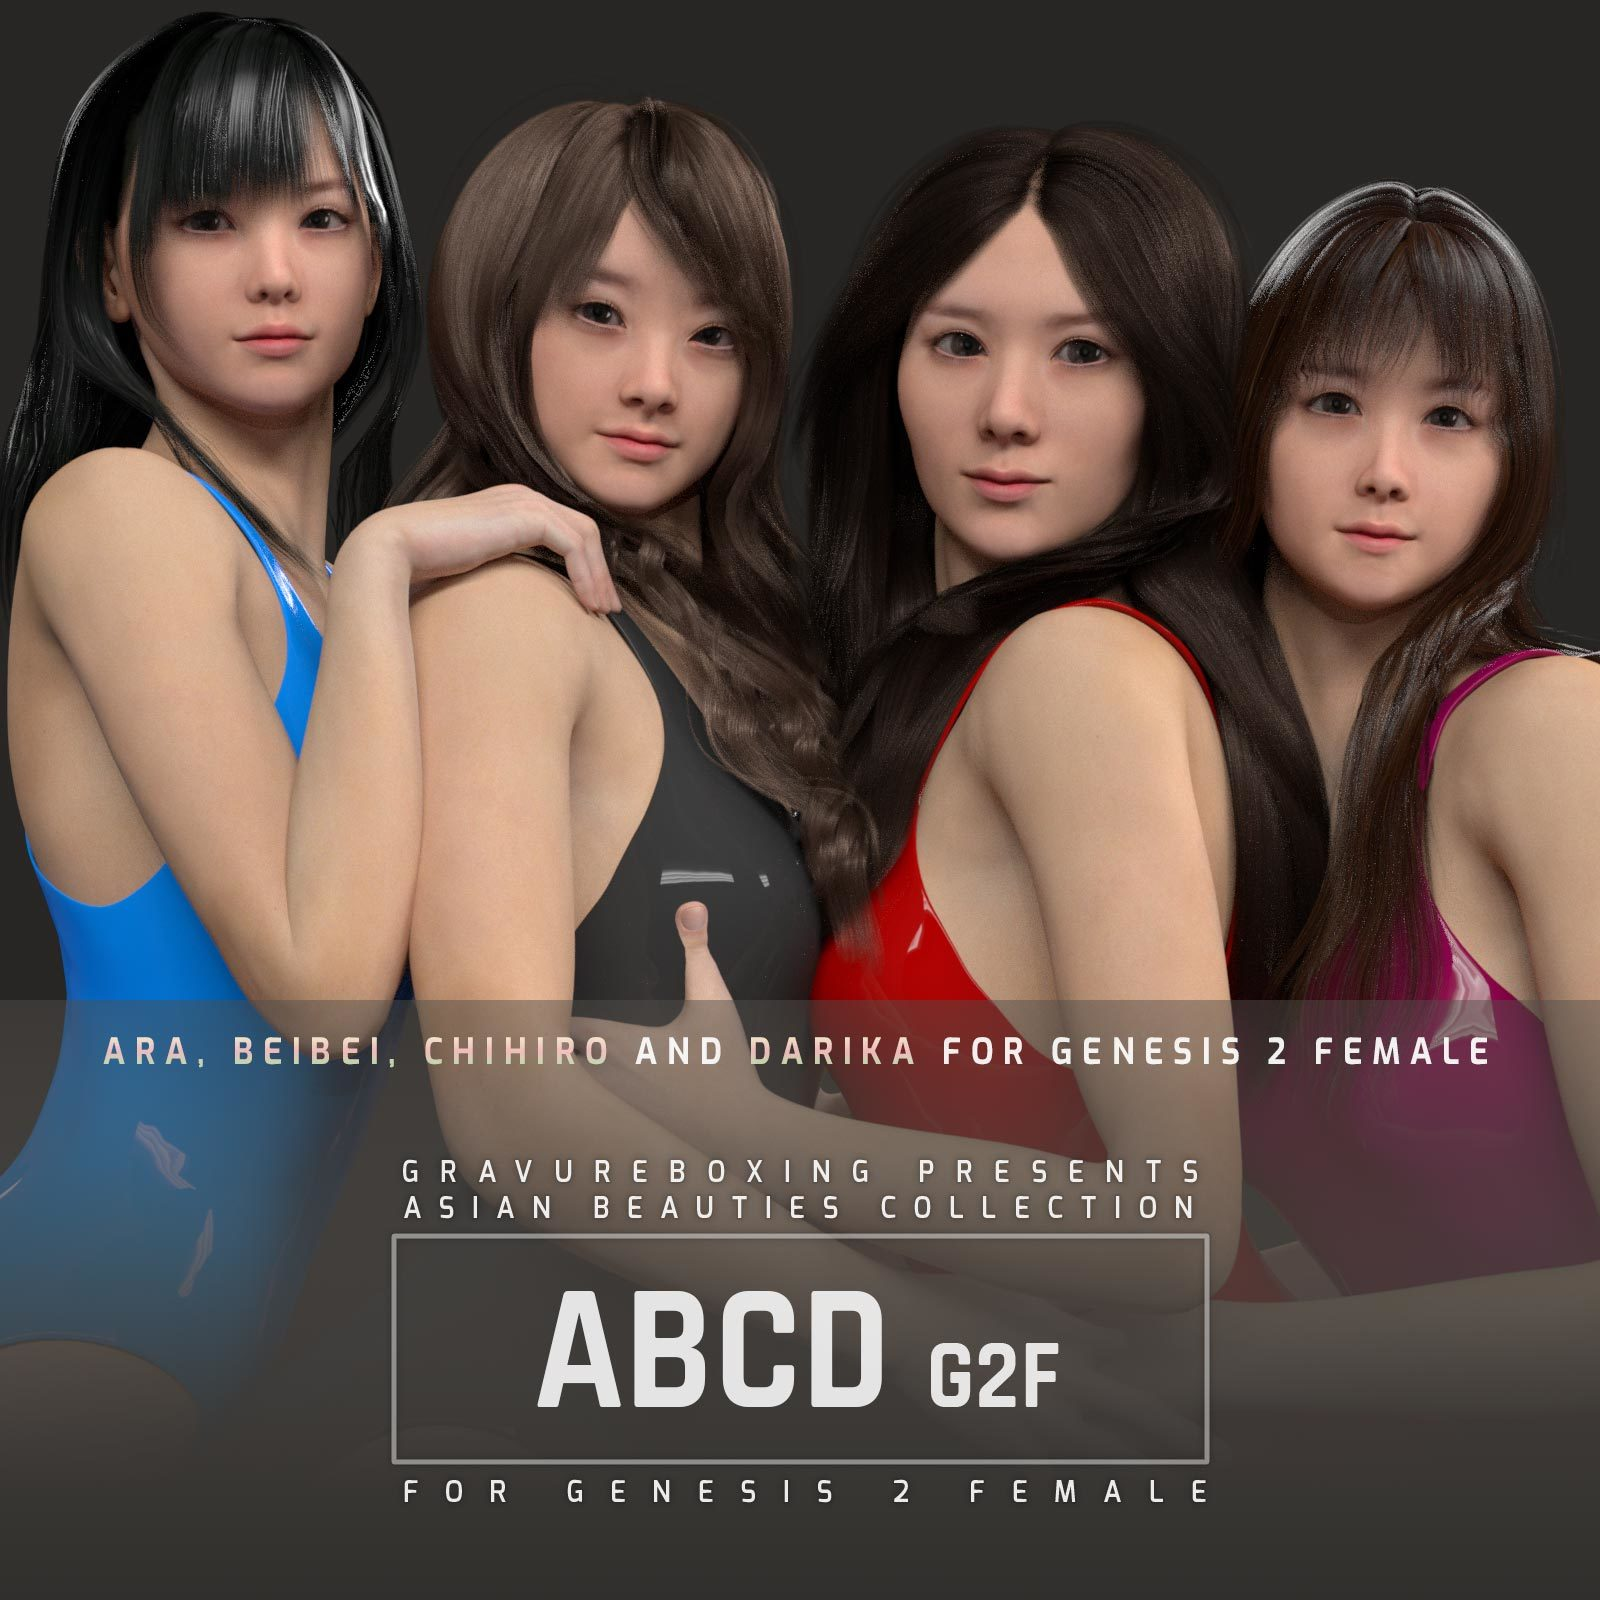 ABCD G2F HEAD MORPHS ONLY for Genesis 2 Female by gravureboxing